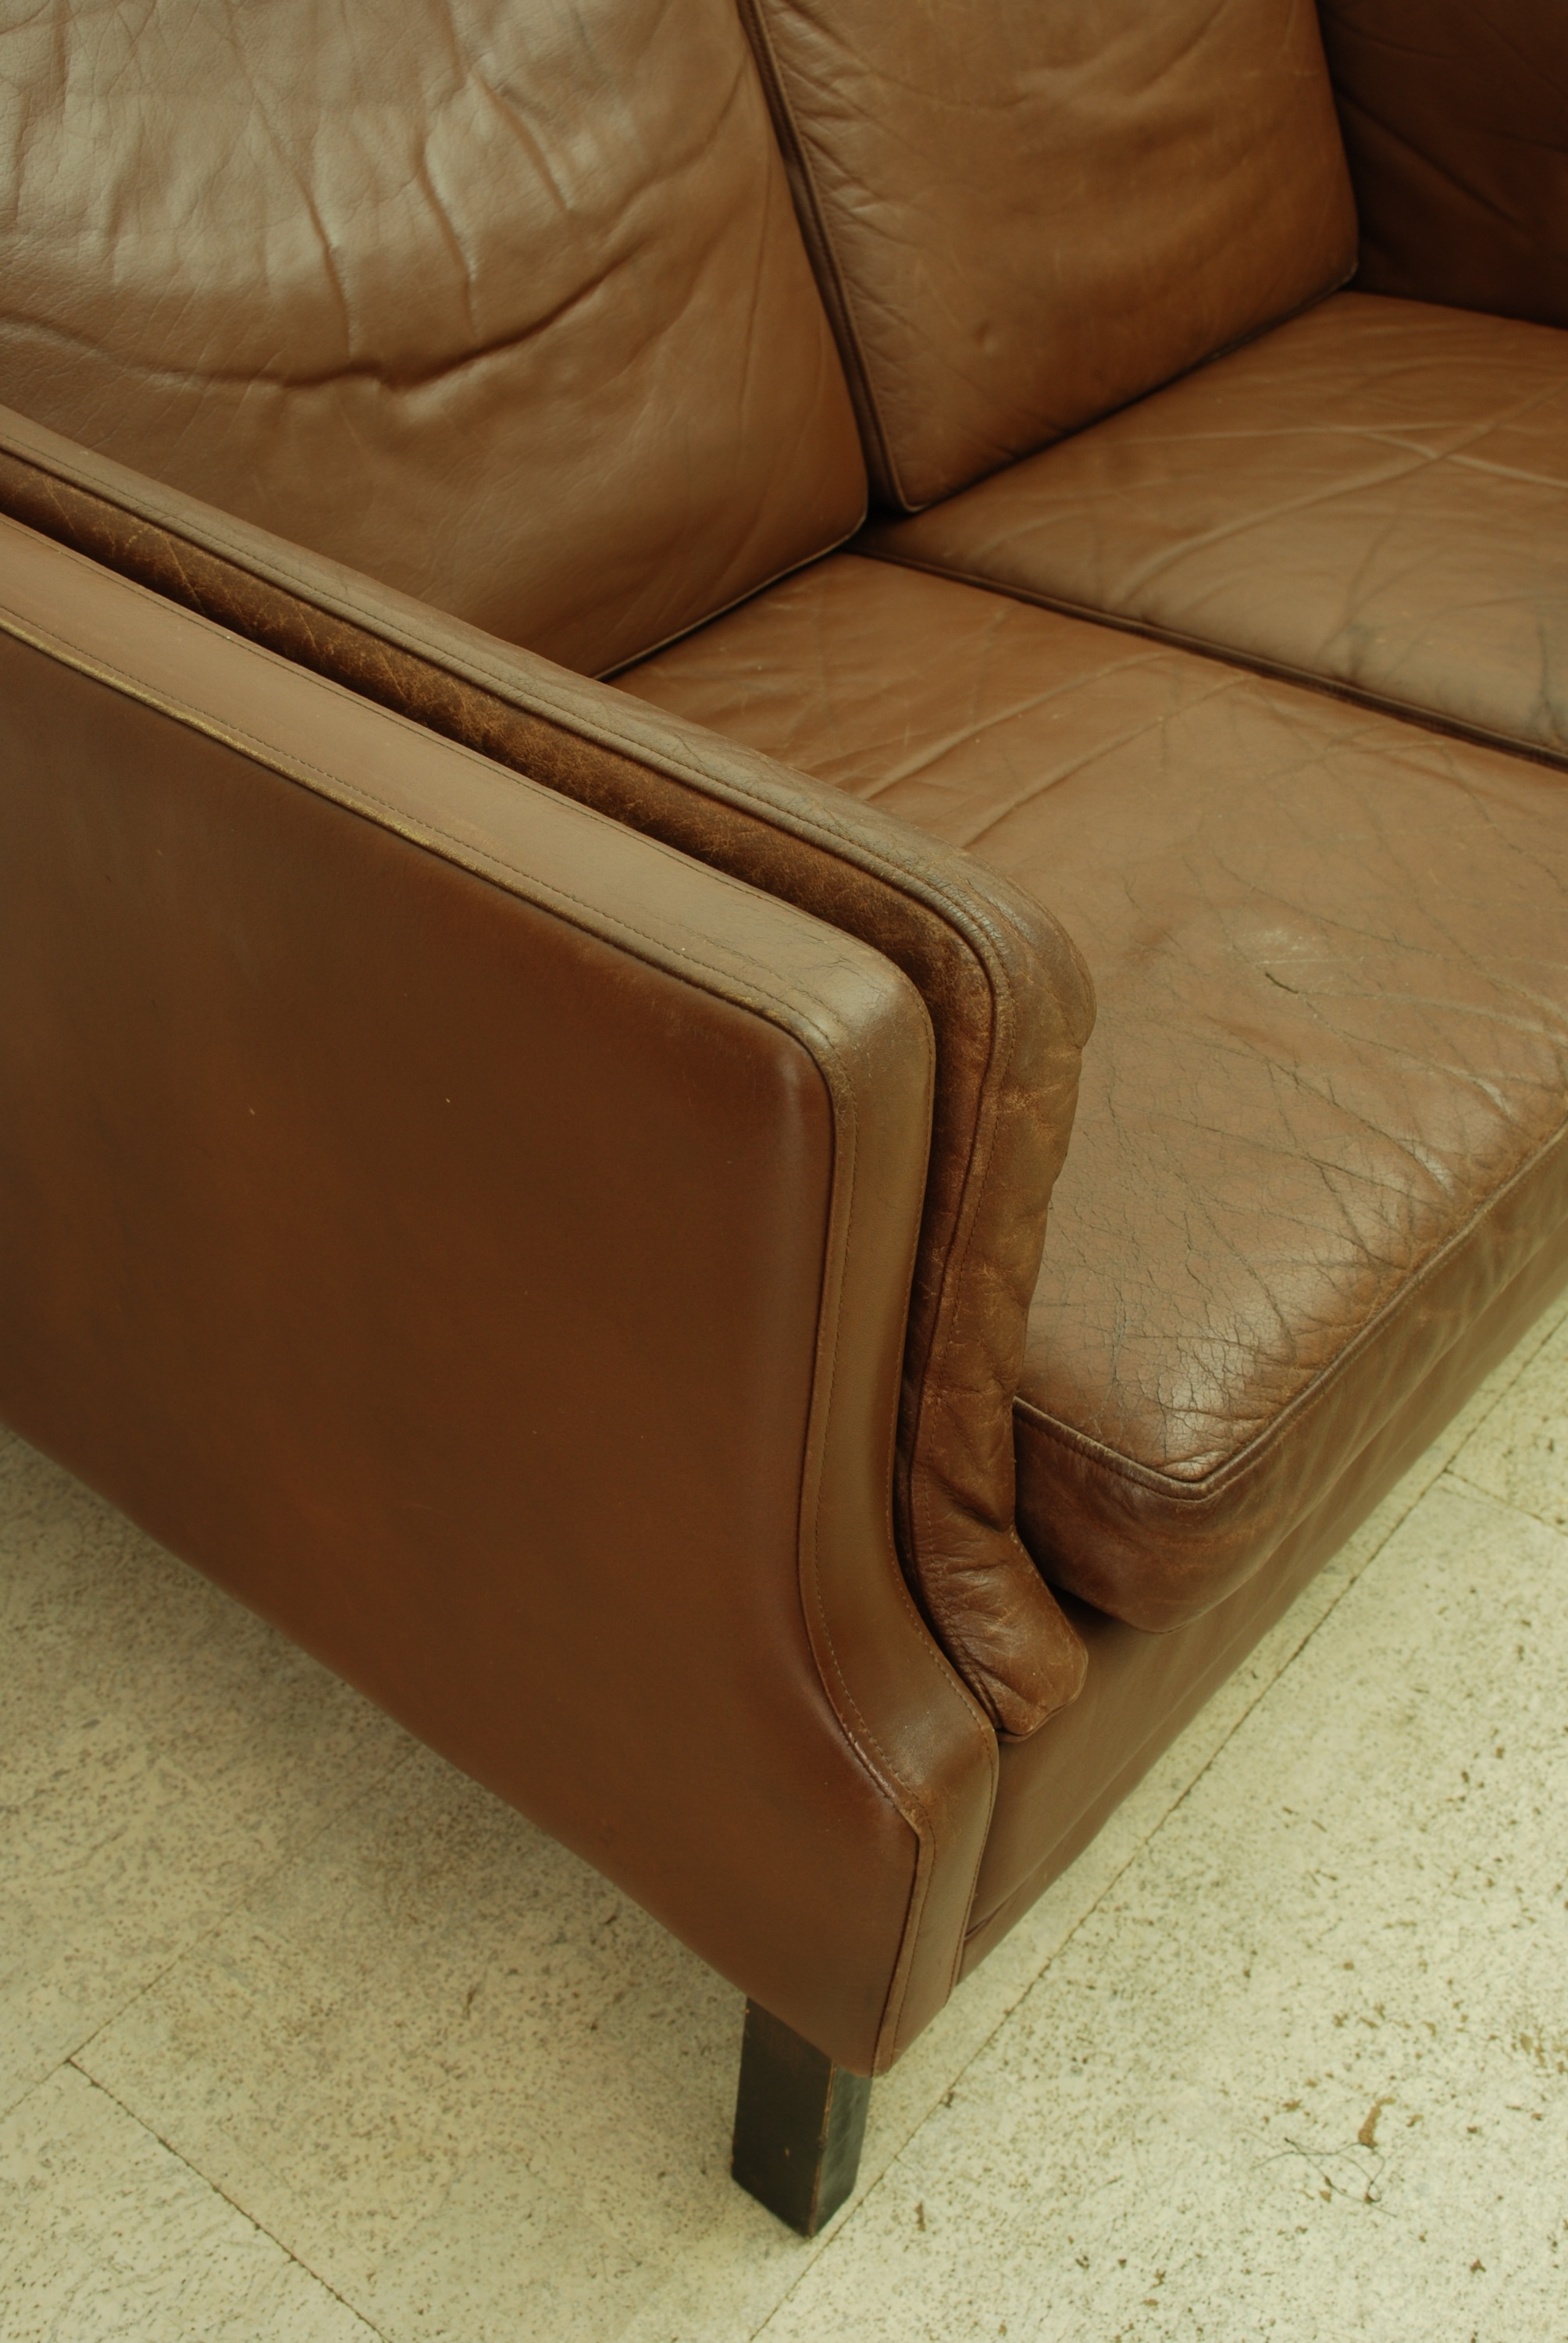 DARK BROWN DANISH SOFA